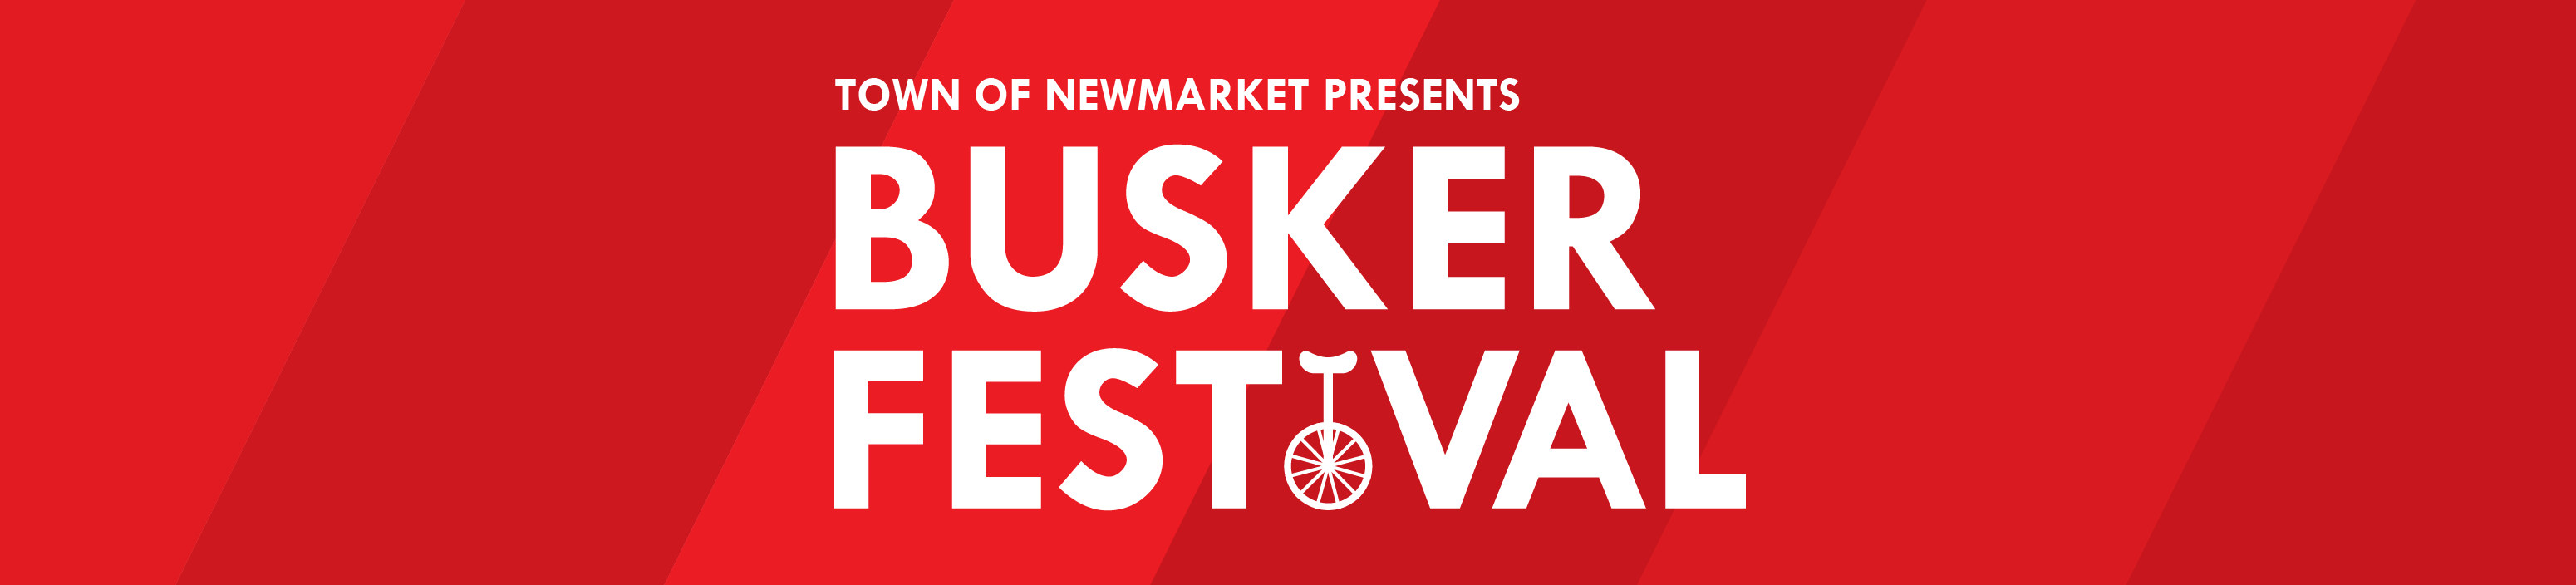 Buskerfestival-Banner.png